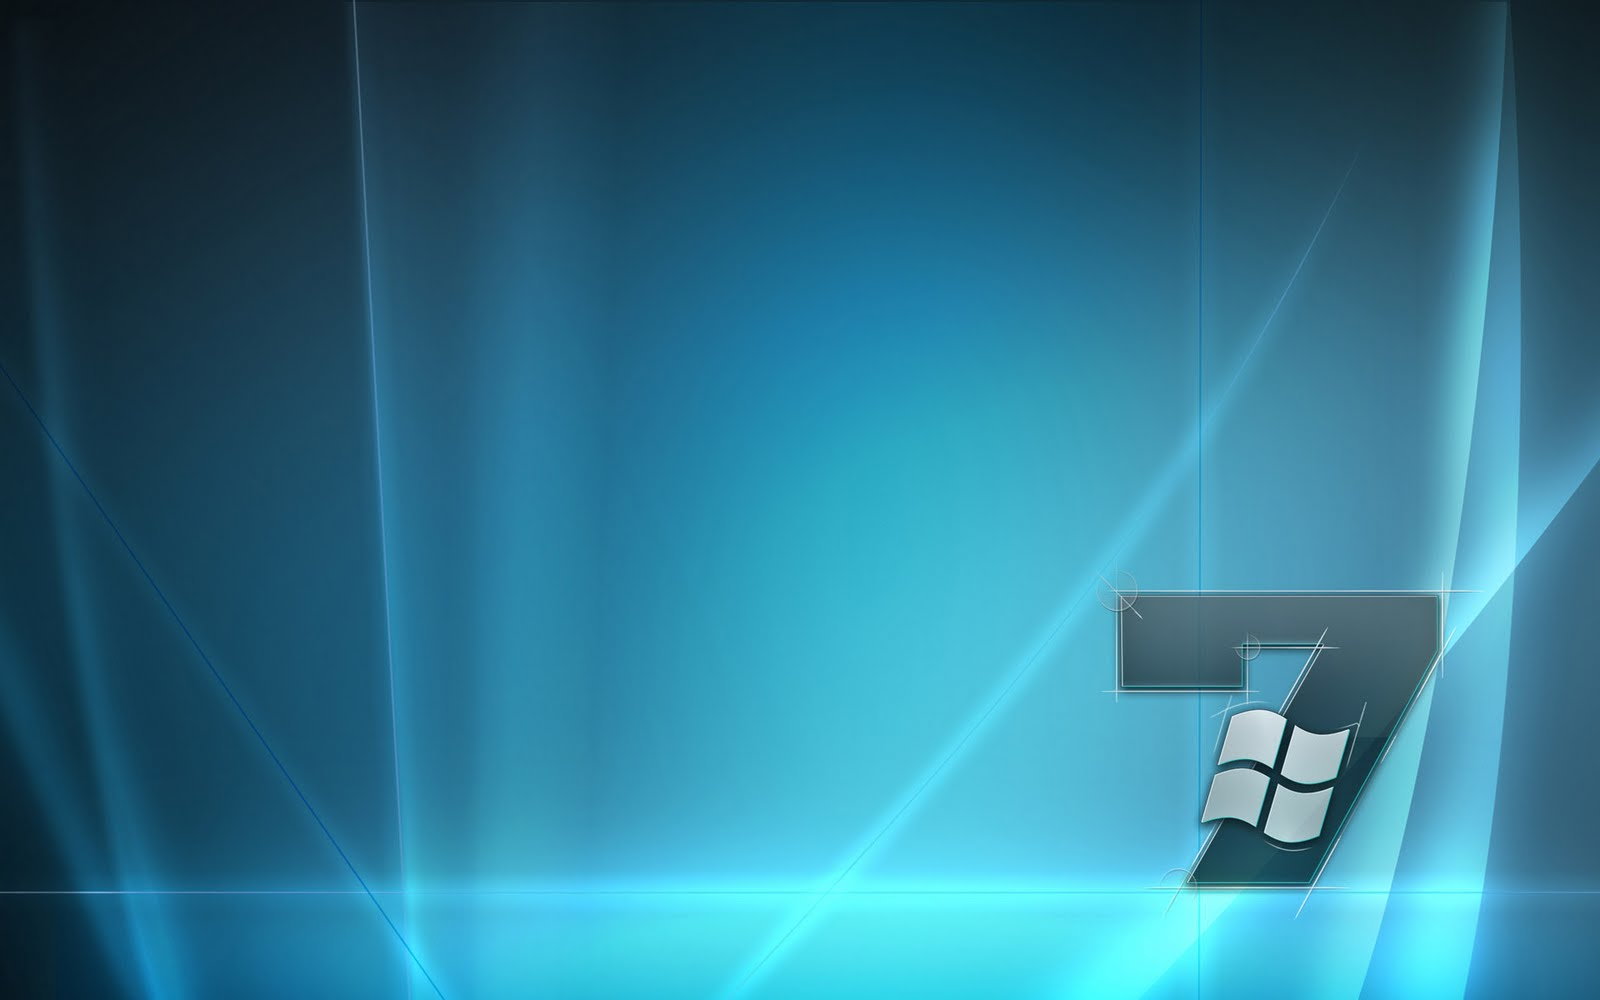 Wallpapers: Animated Wallpapers For Windows 7 - photo#9